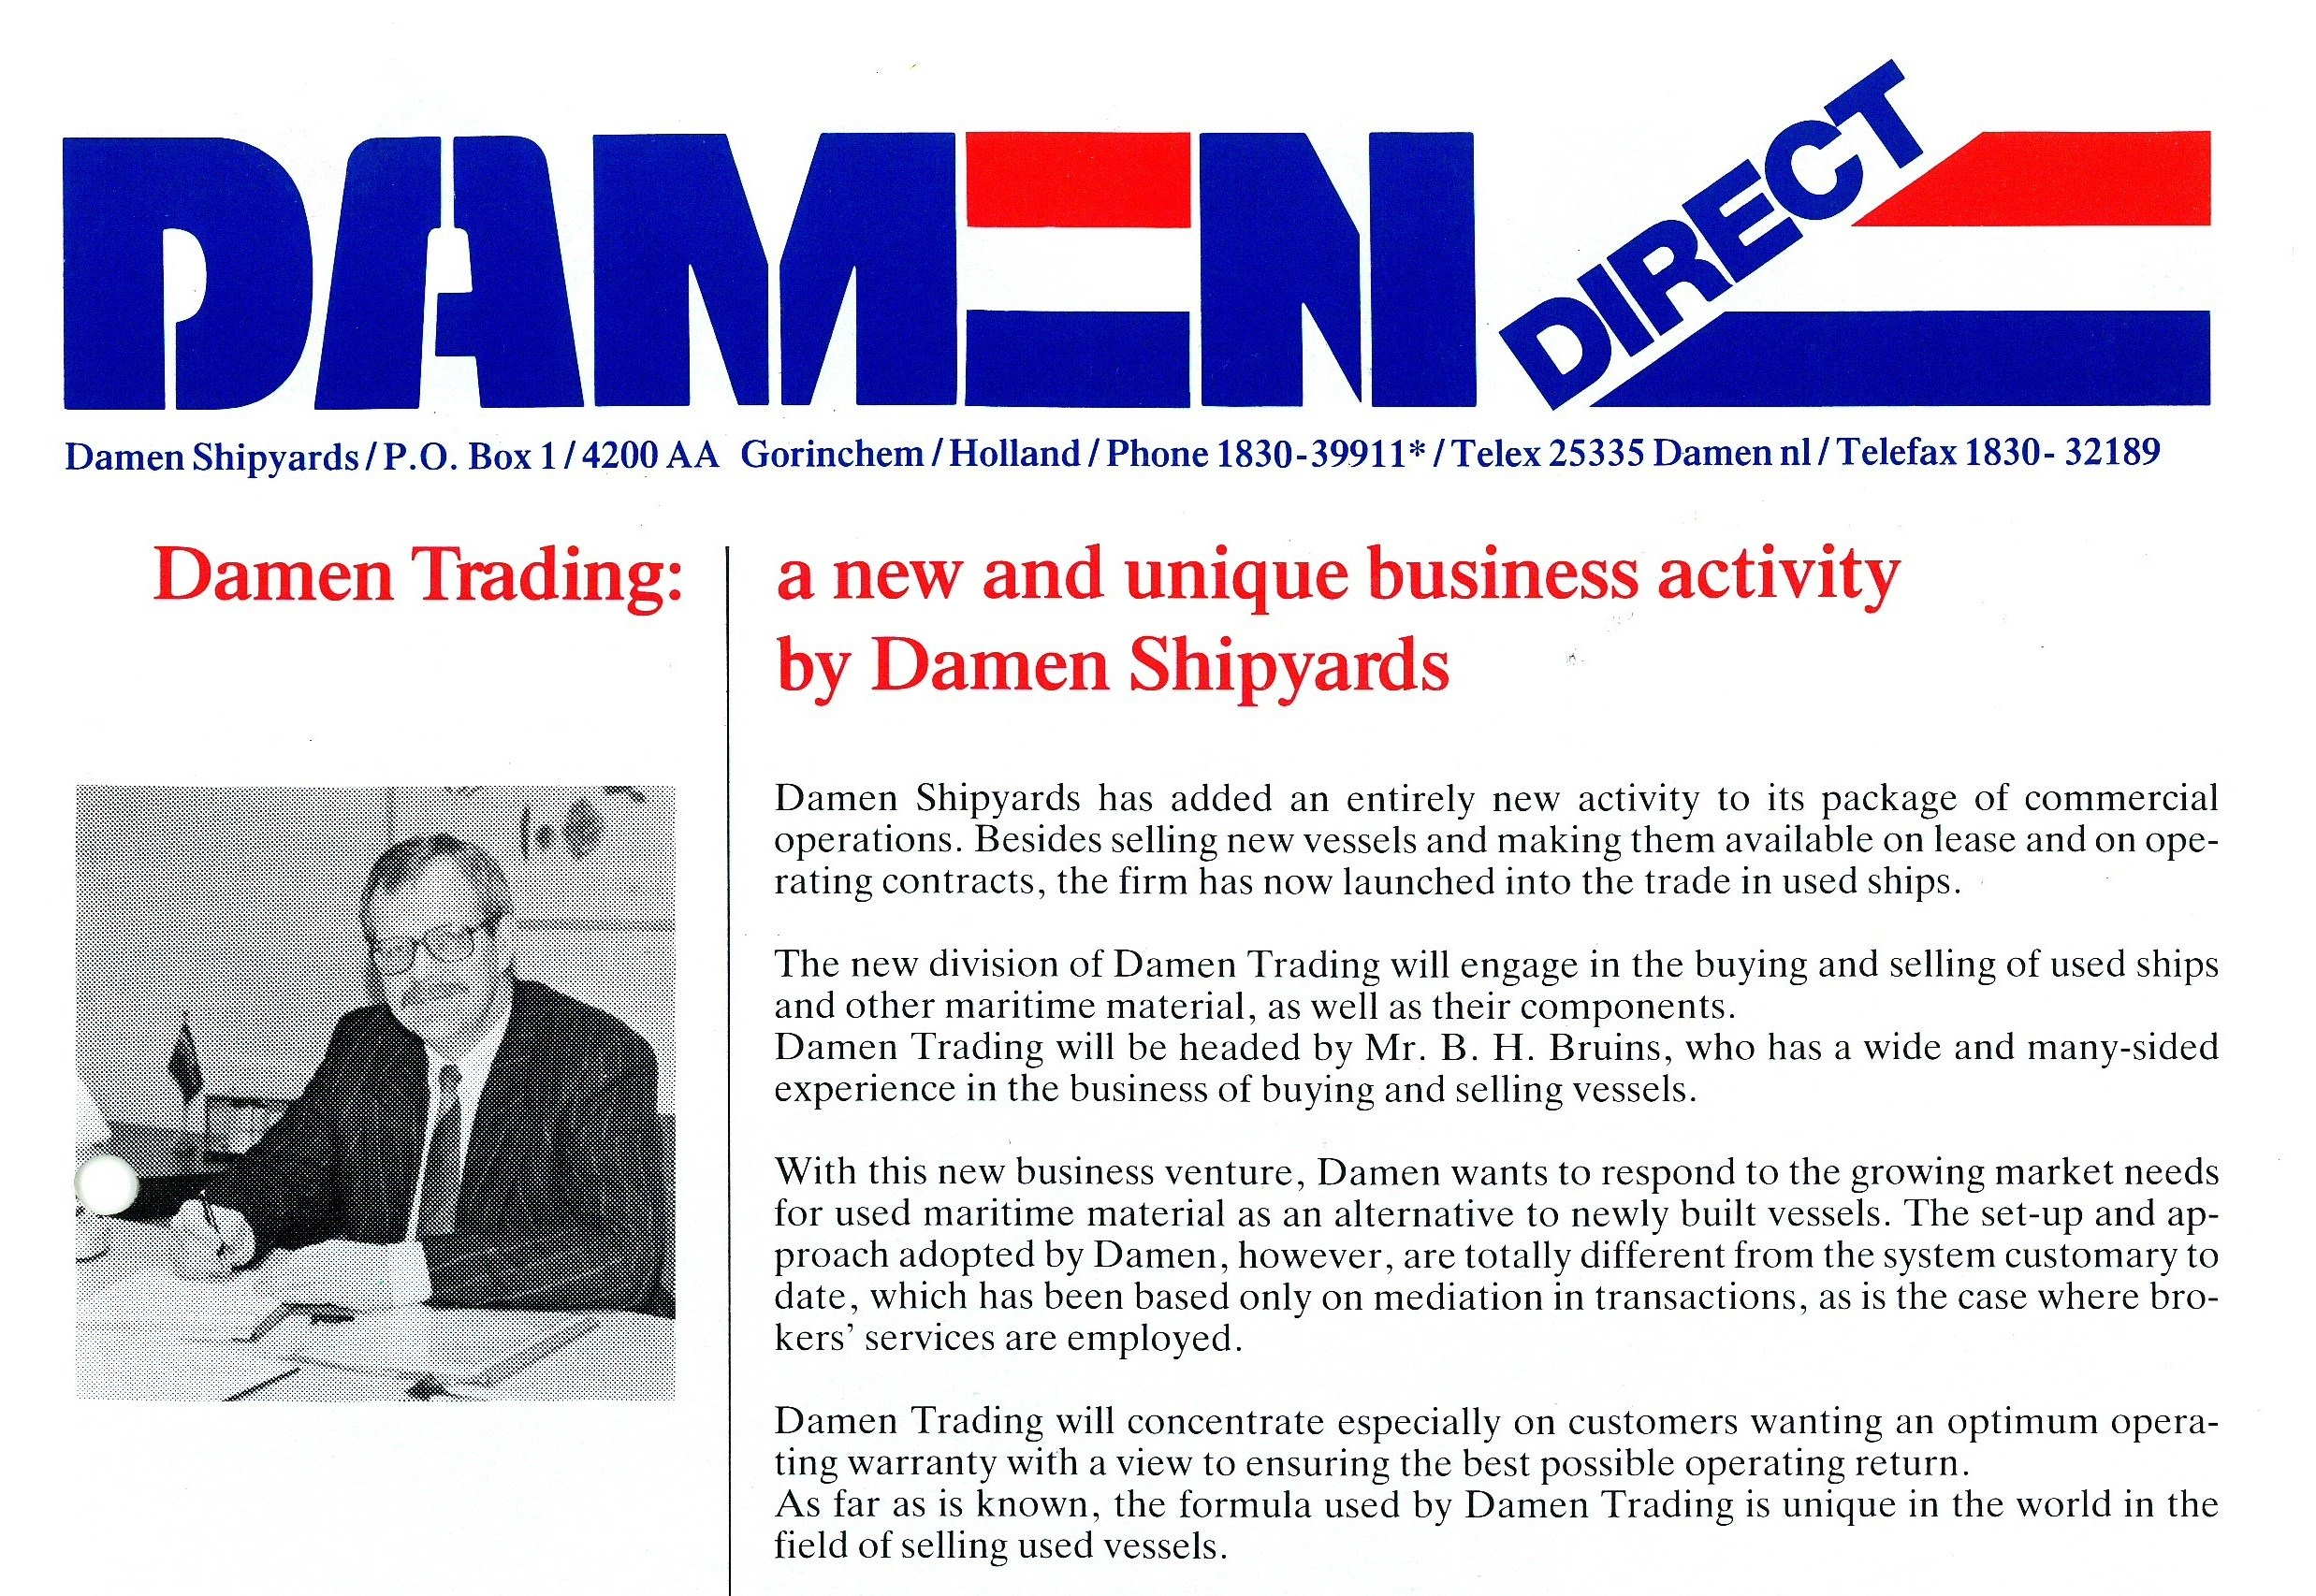 Damen Trading has become a respected broker with much experience